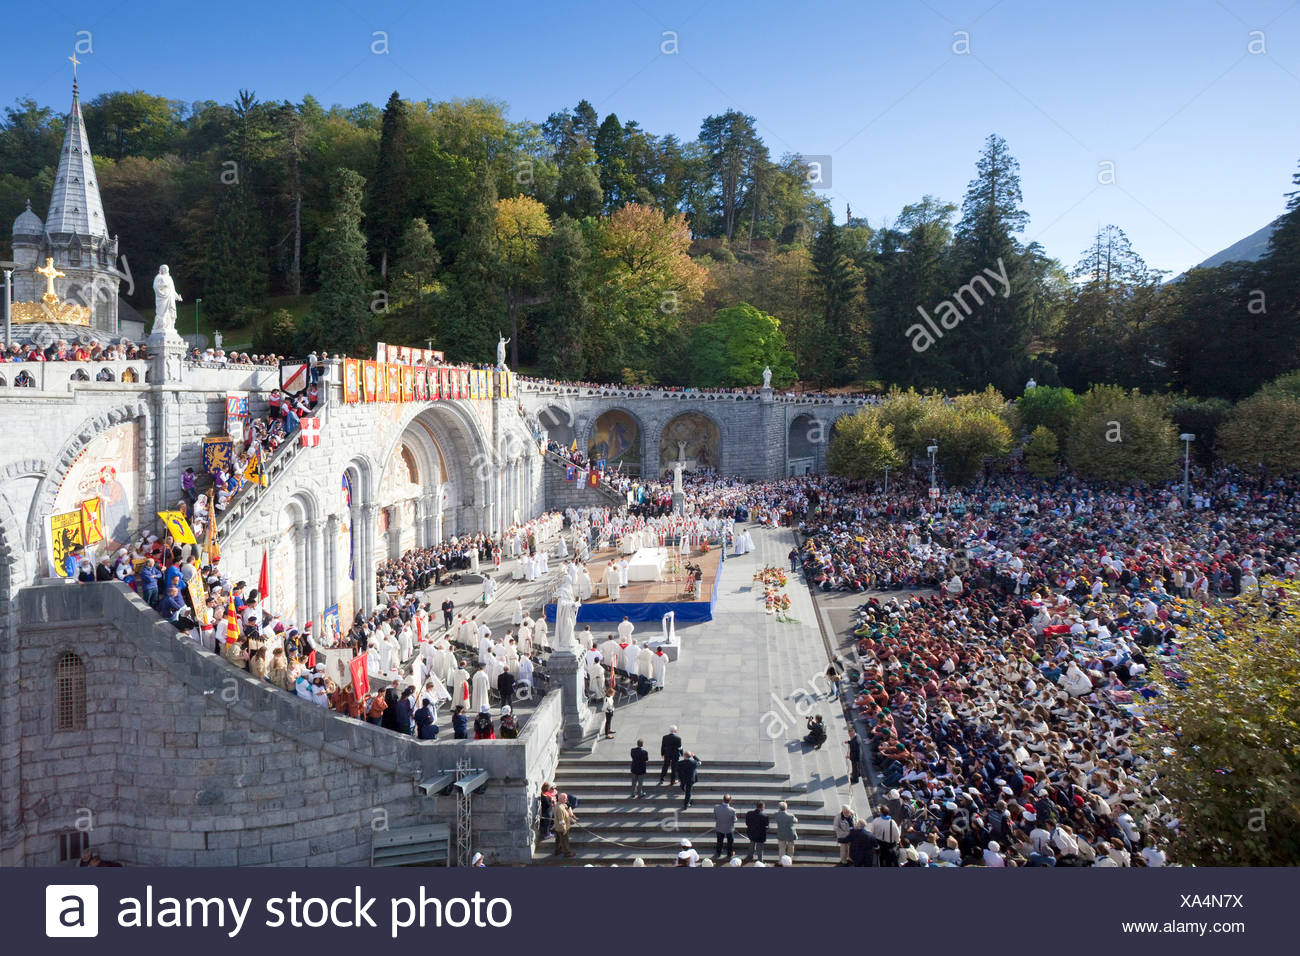 France, Europe, Lourdes, Pyrenees, place of pilgrimage, hope, miracle, disabled, hinders, believers, creditors, religion - Stock Image